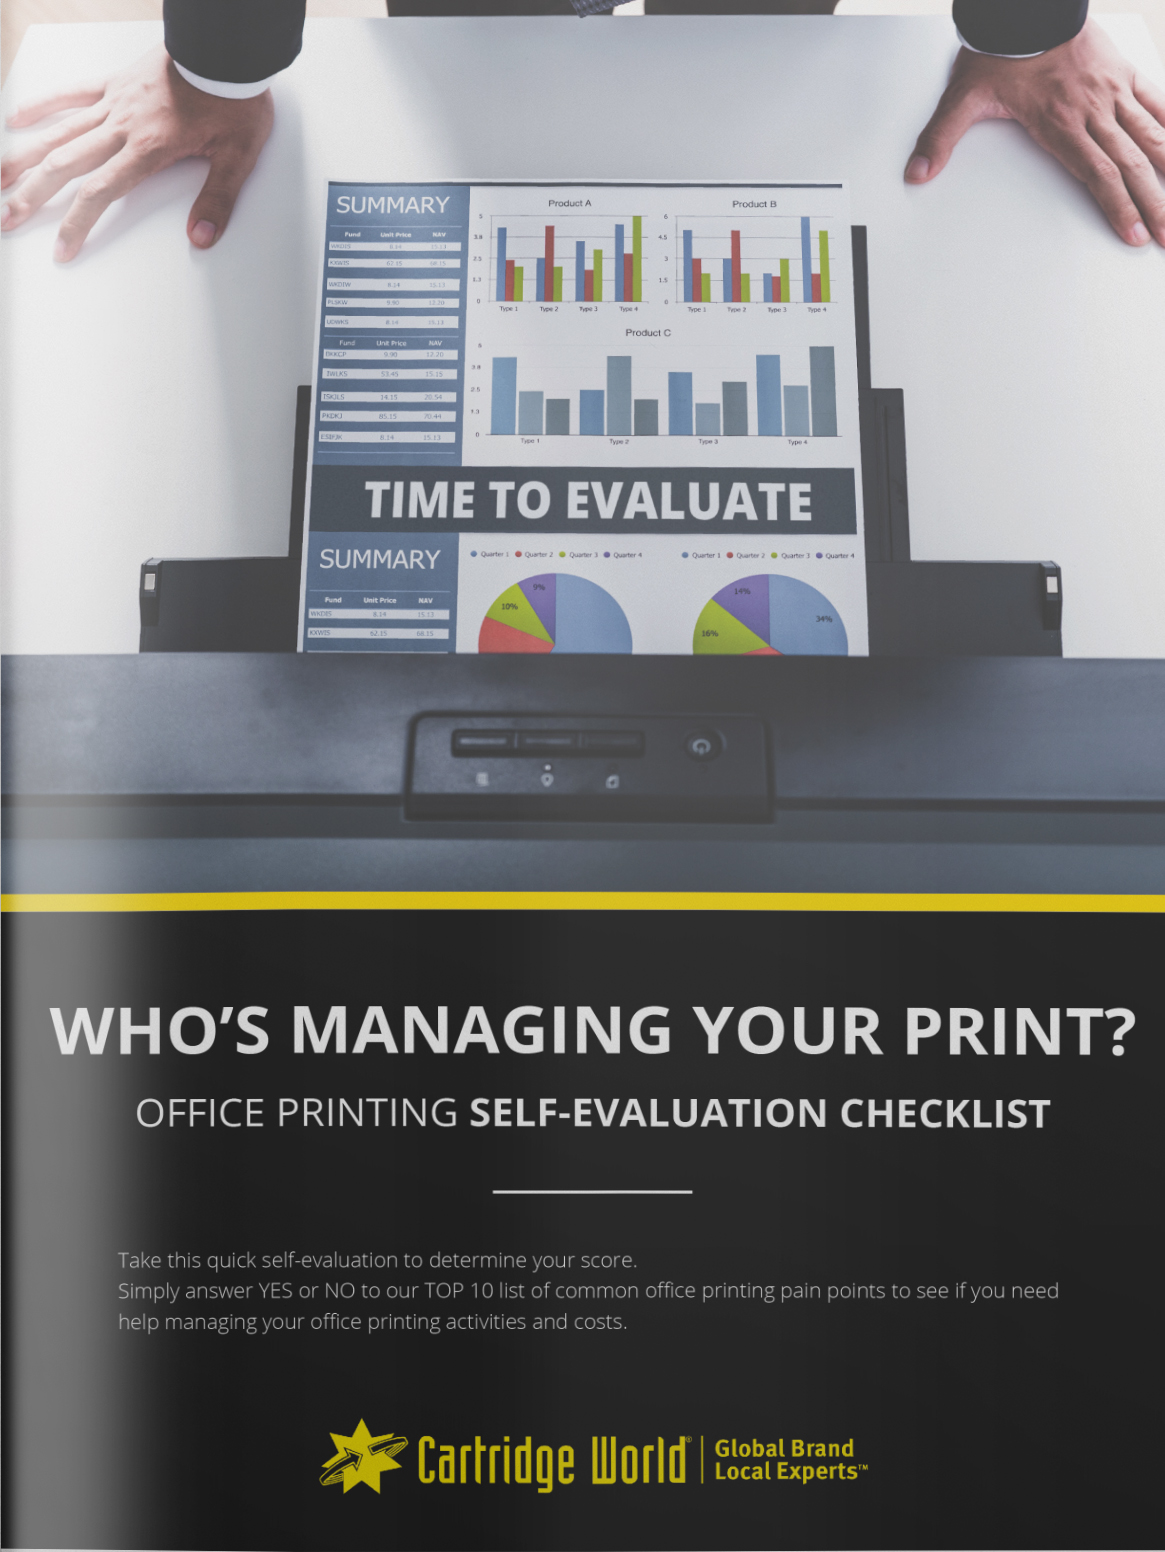 Office Printing Self-Evaluation Checklist